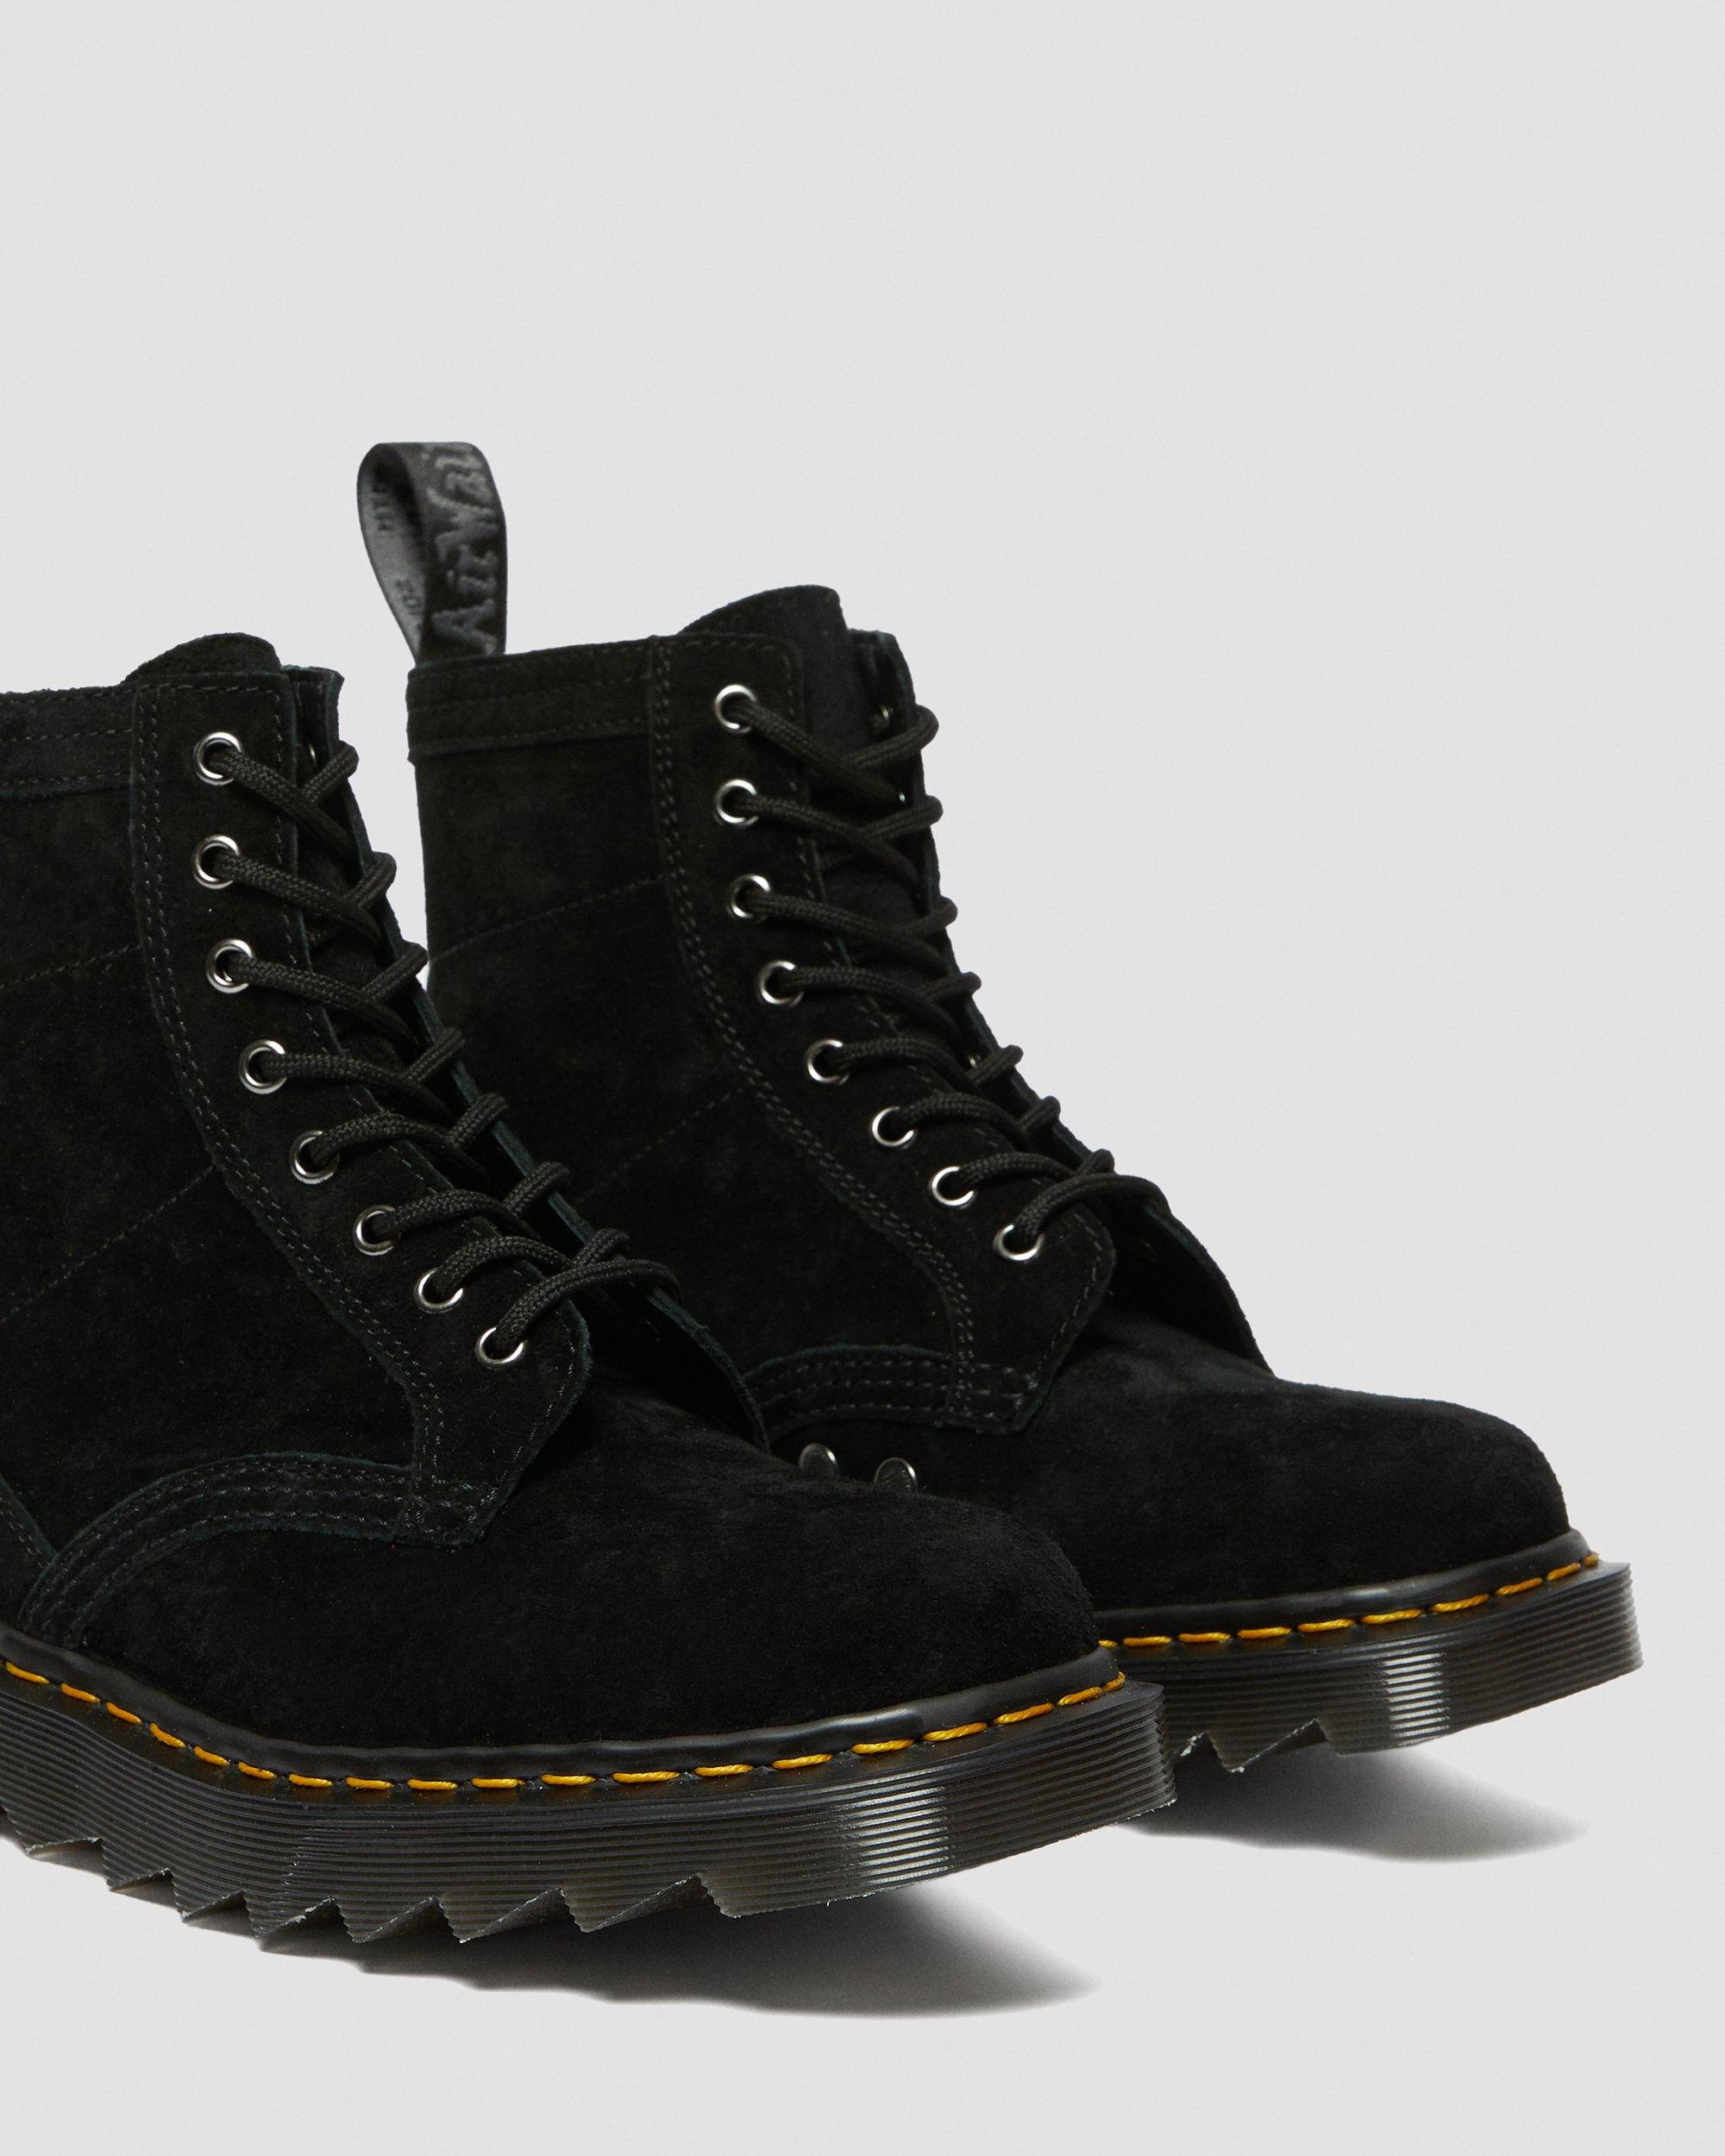 HAVEN x Dr. Martens to Release 1460 Jungle Boot | HYPEBAE